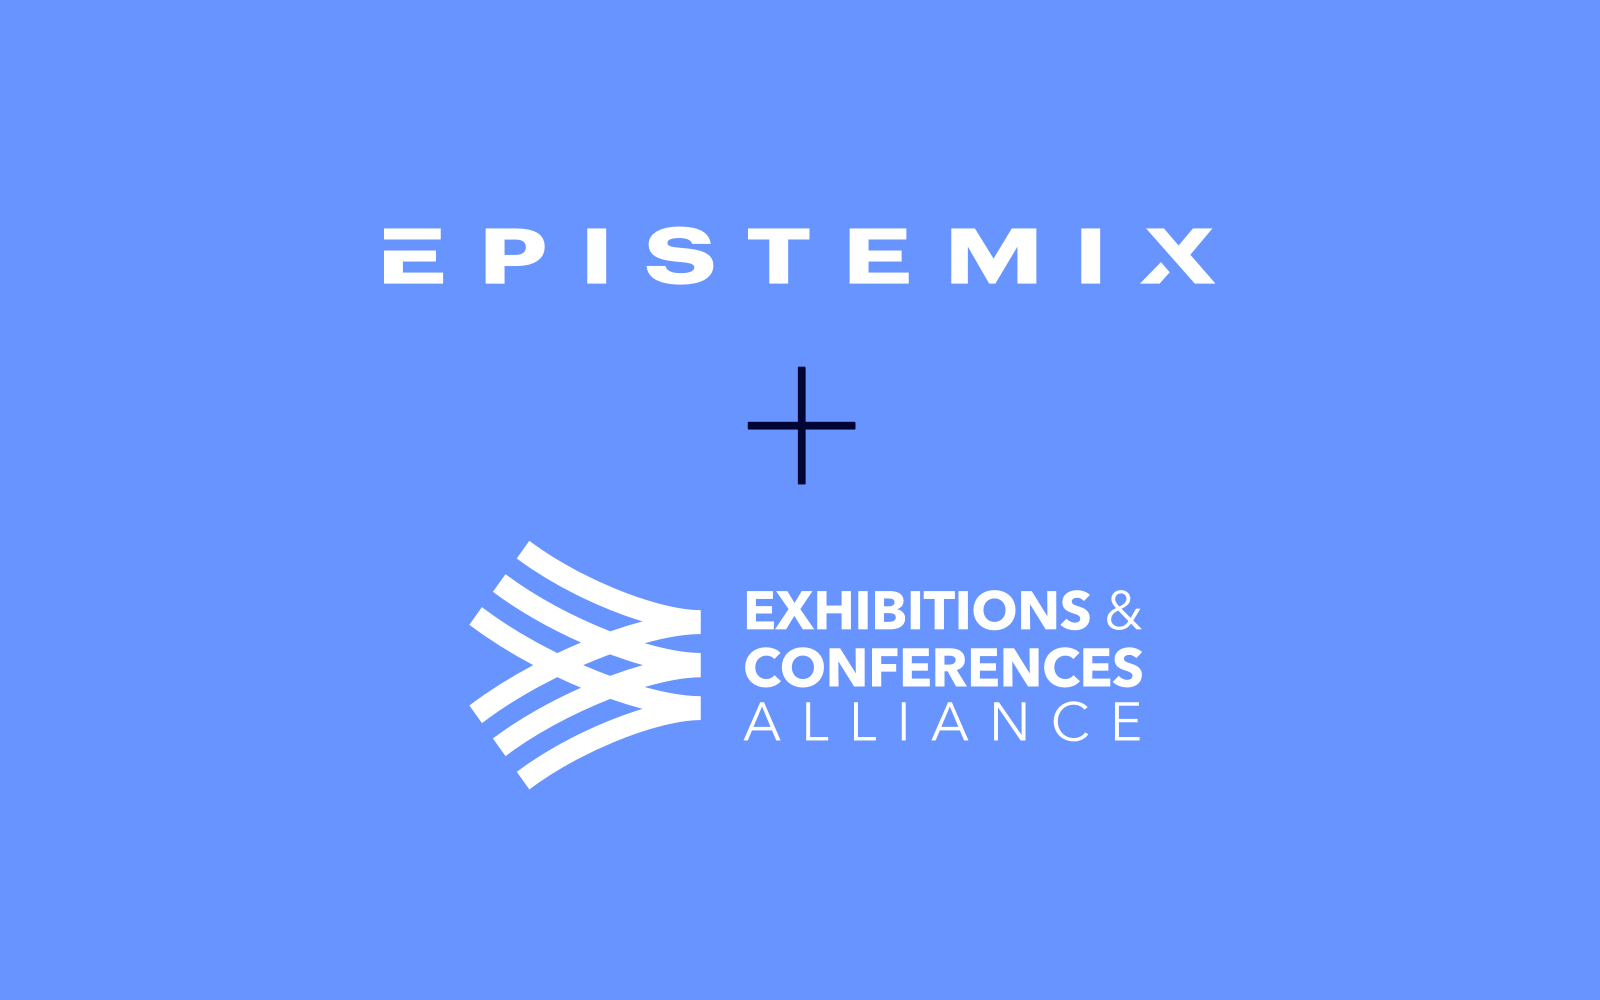 Epistemix and the Exhibitions & Conferences Alliance Announce Partnership to Safely Reopen Conventions and Trade Shows in theU.S.